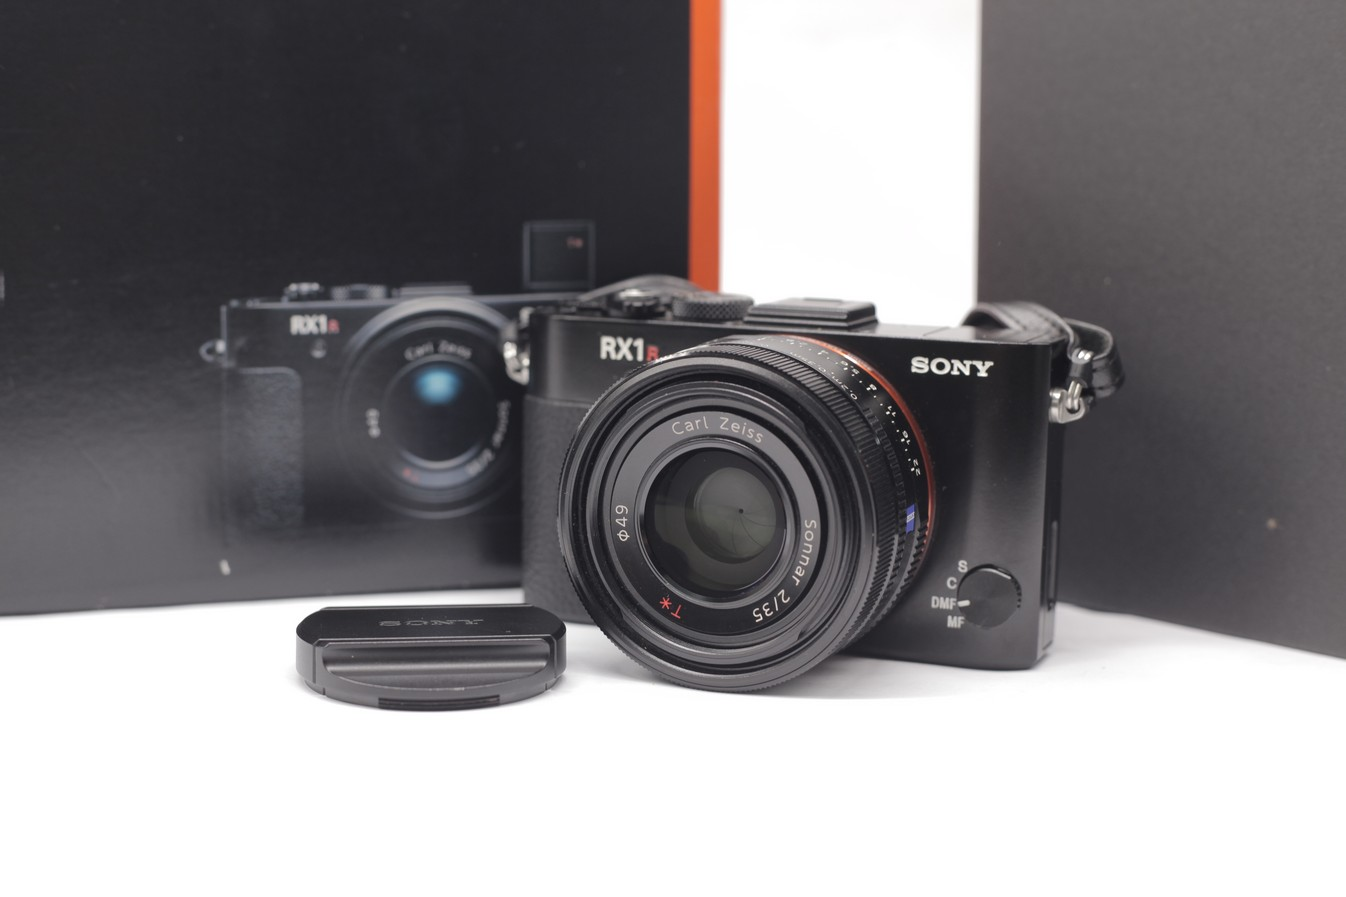 Outstanding Sony Compact Full Frame Camera Images - Framed Art Ideas ...